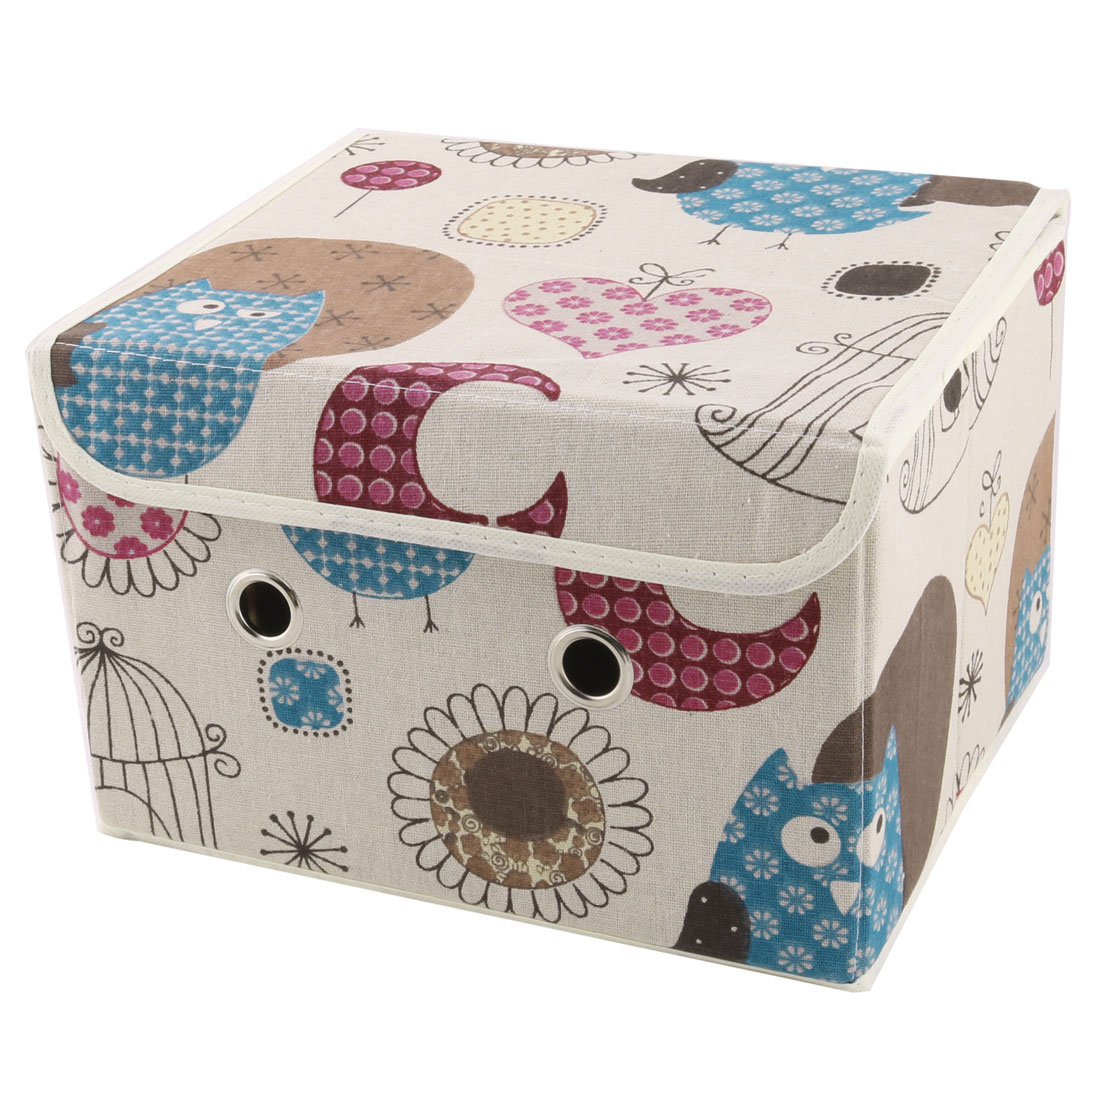 Home Bedroom Cotton Linen Owl Pattern Clothes Underwear Socks Storage Box Case